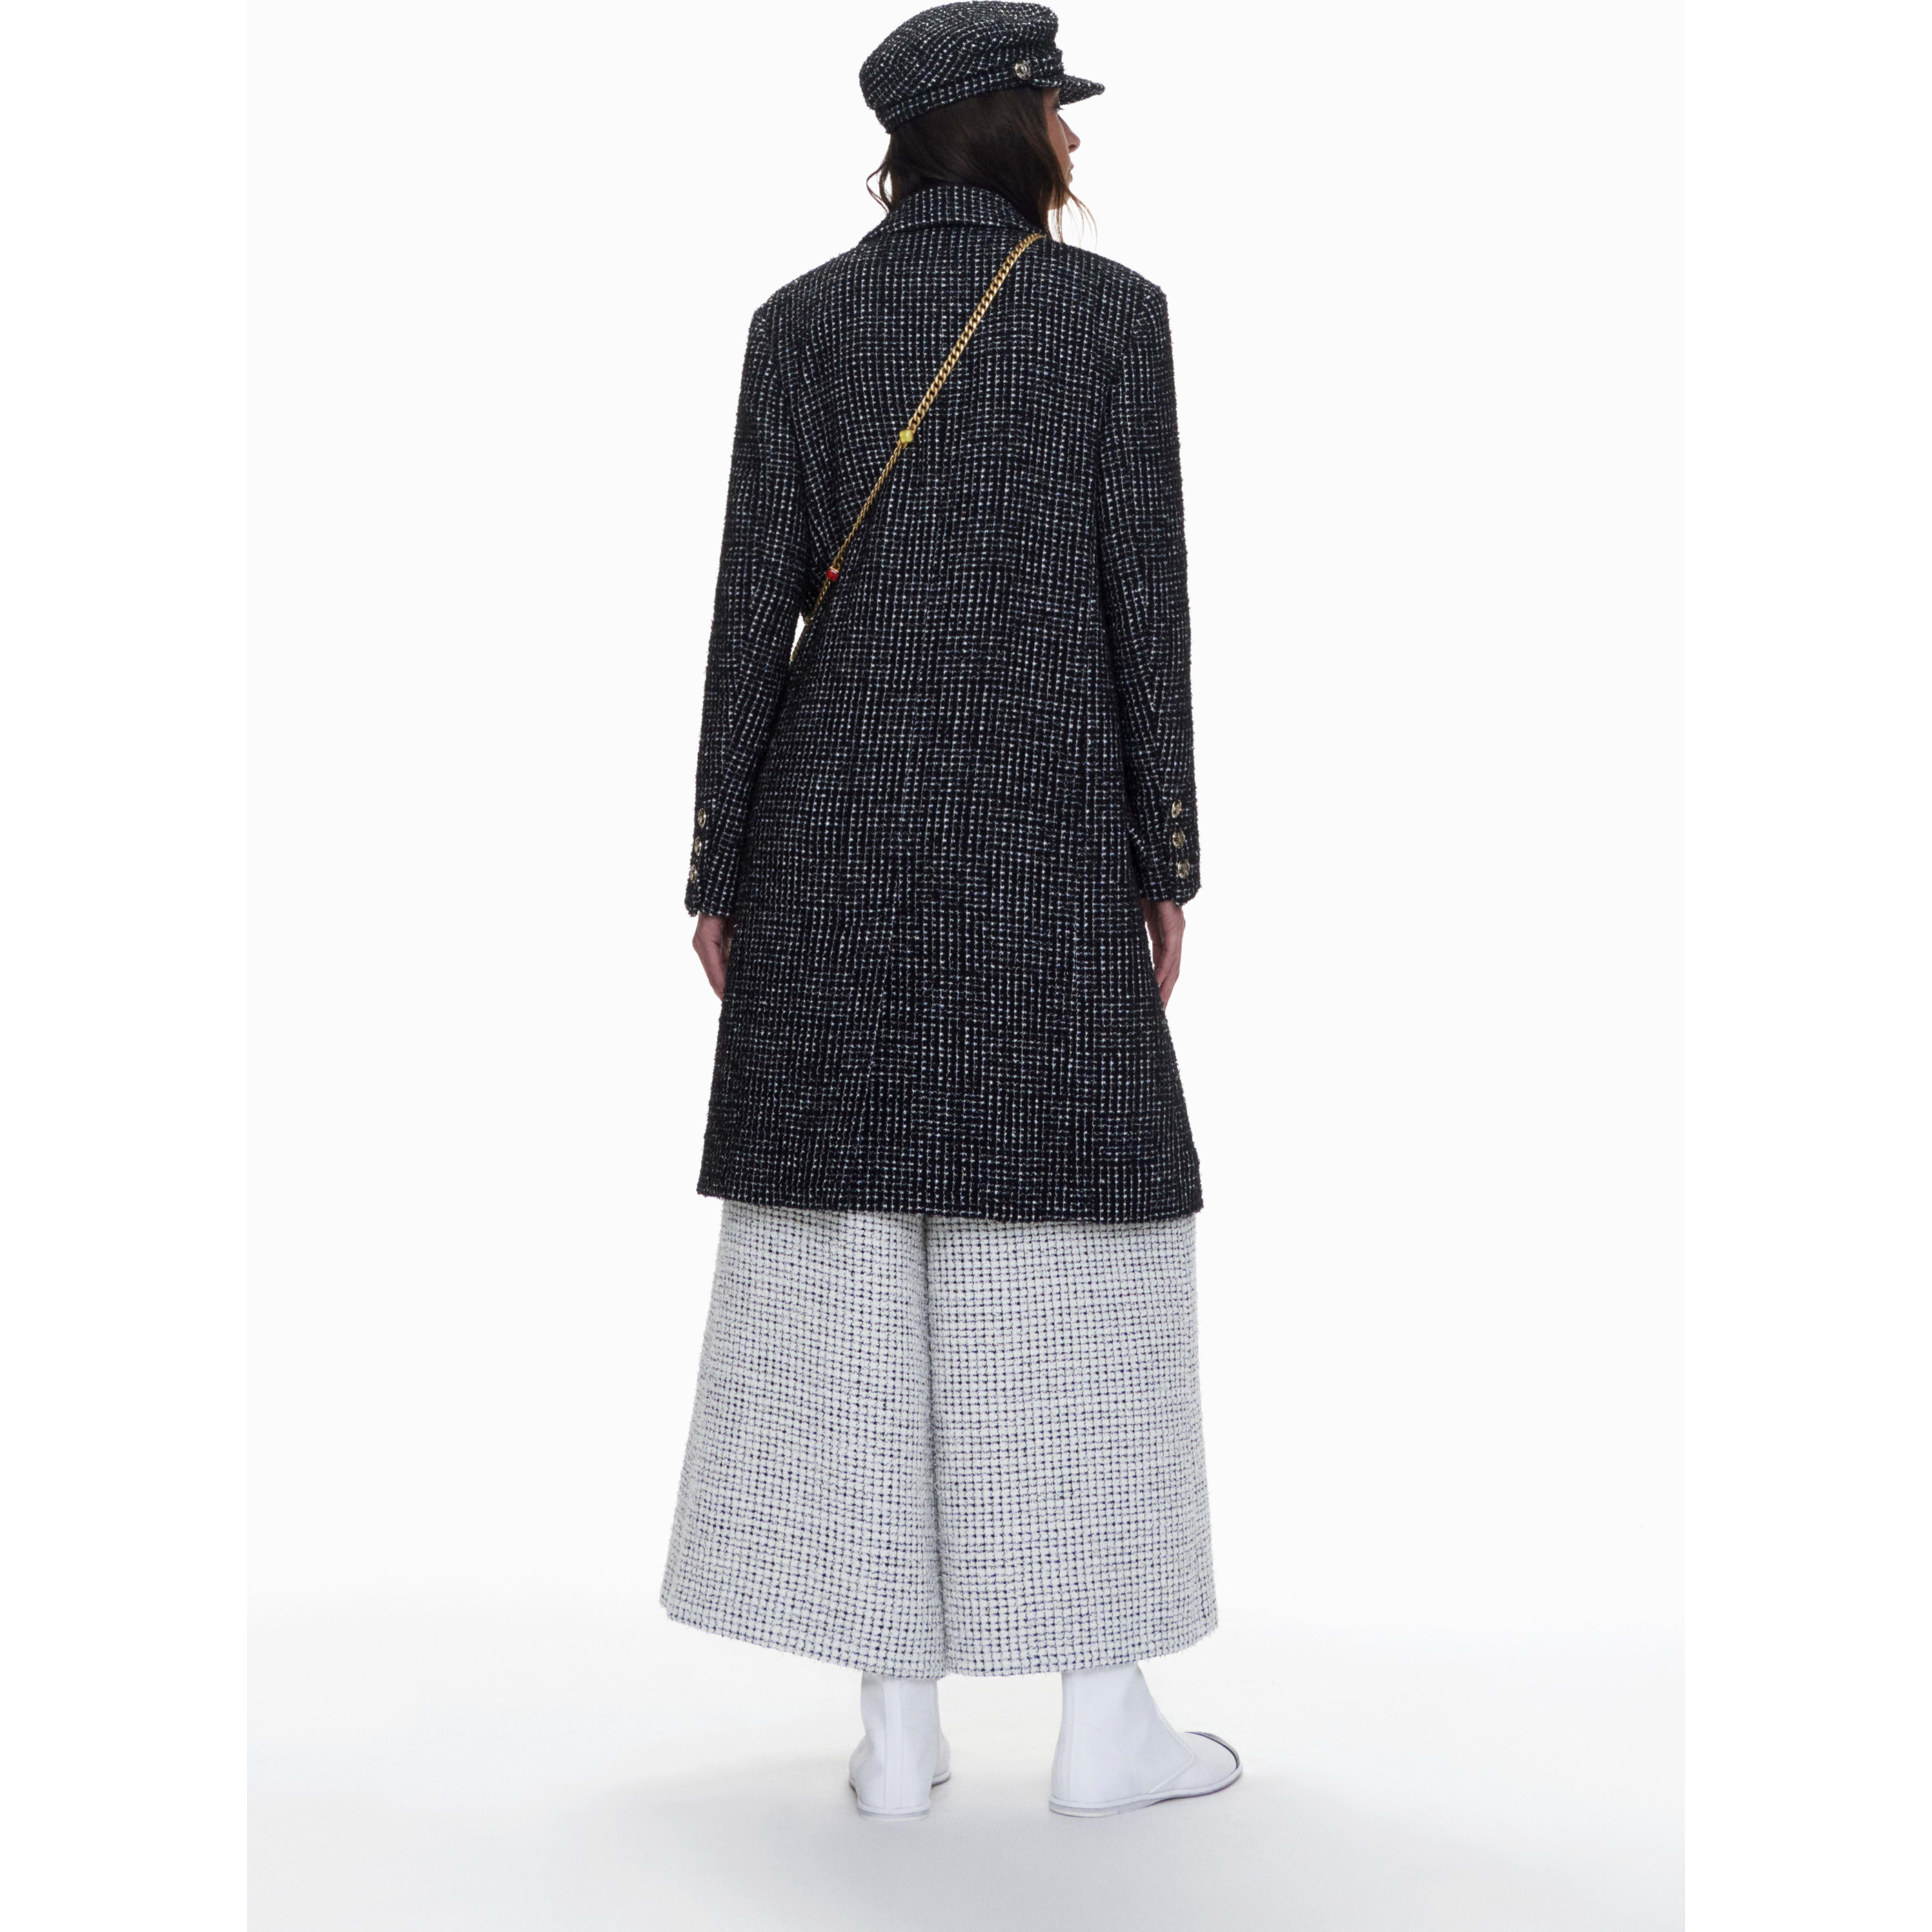 Coat - Black & White - Tweed - CHANEL - Alternative view - see standard sized version